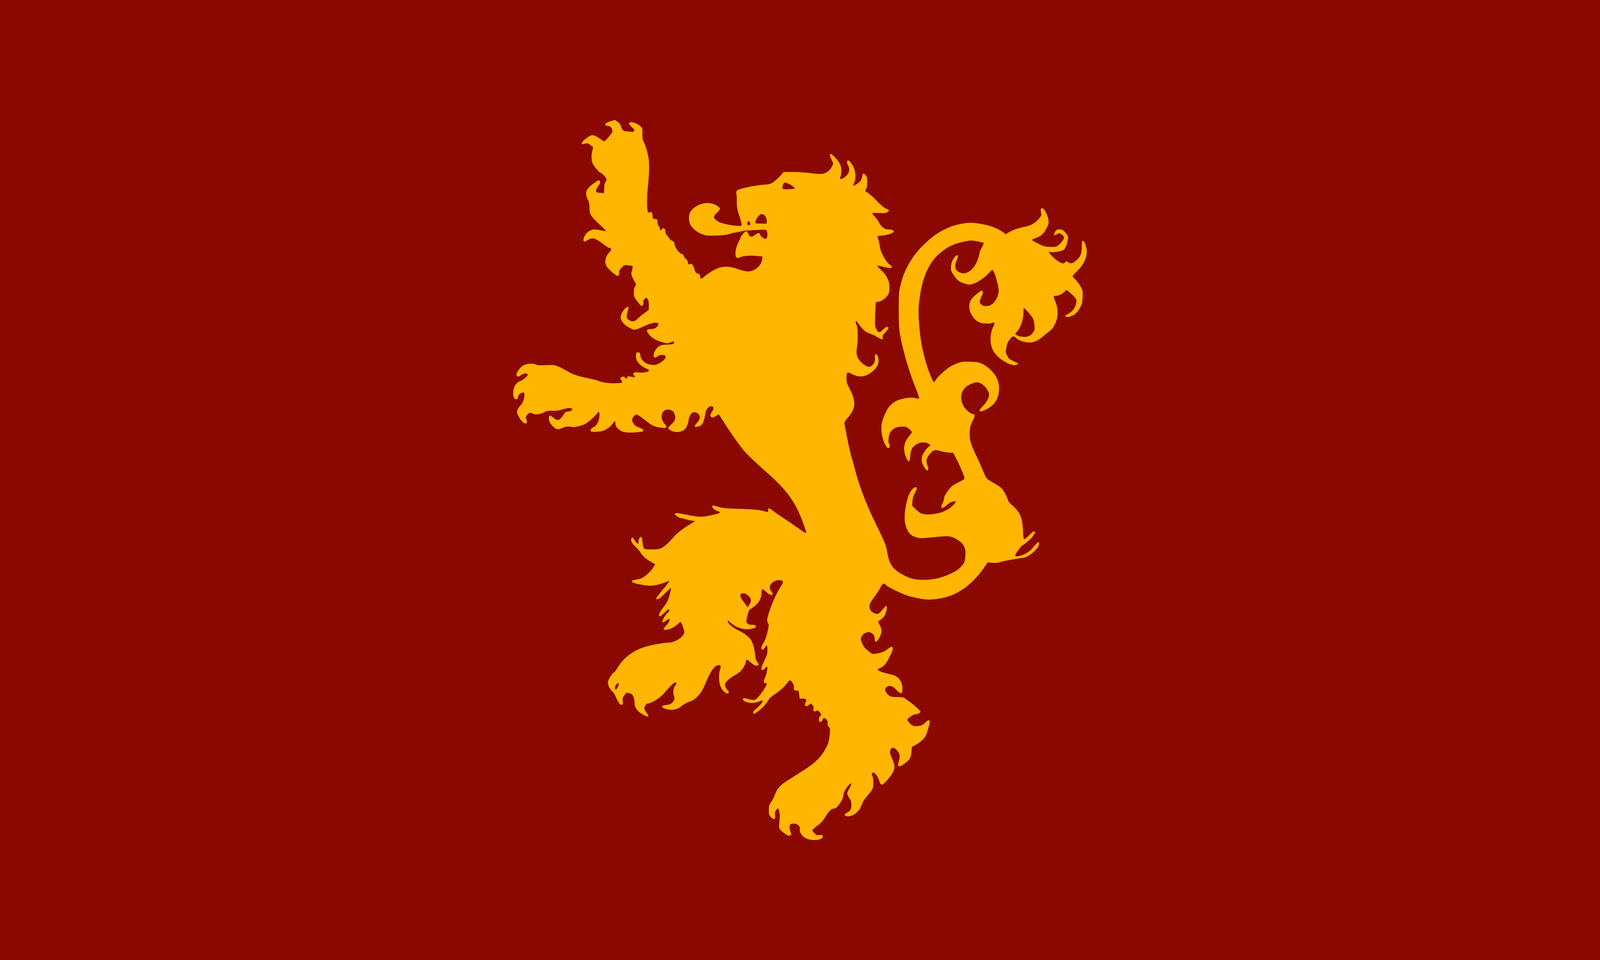 The Flag of House Lannister by achaley